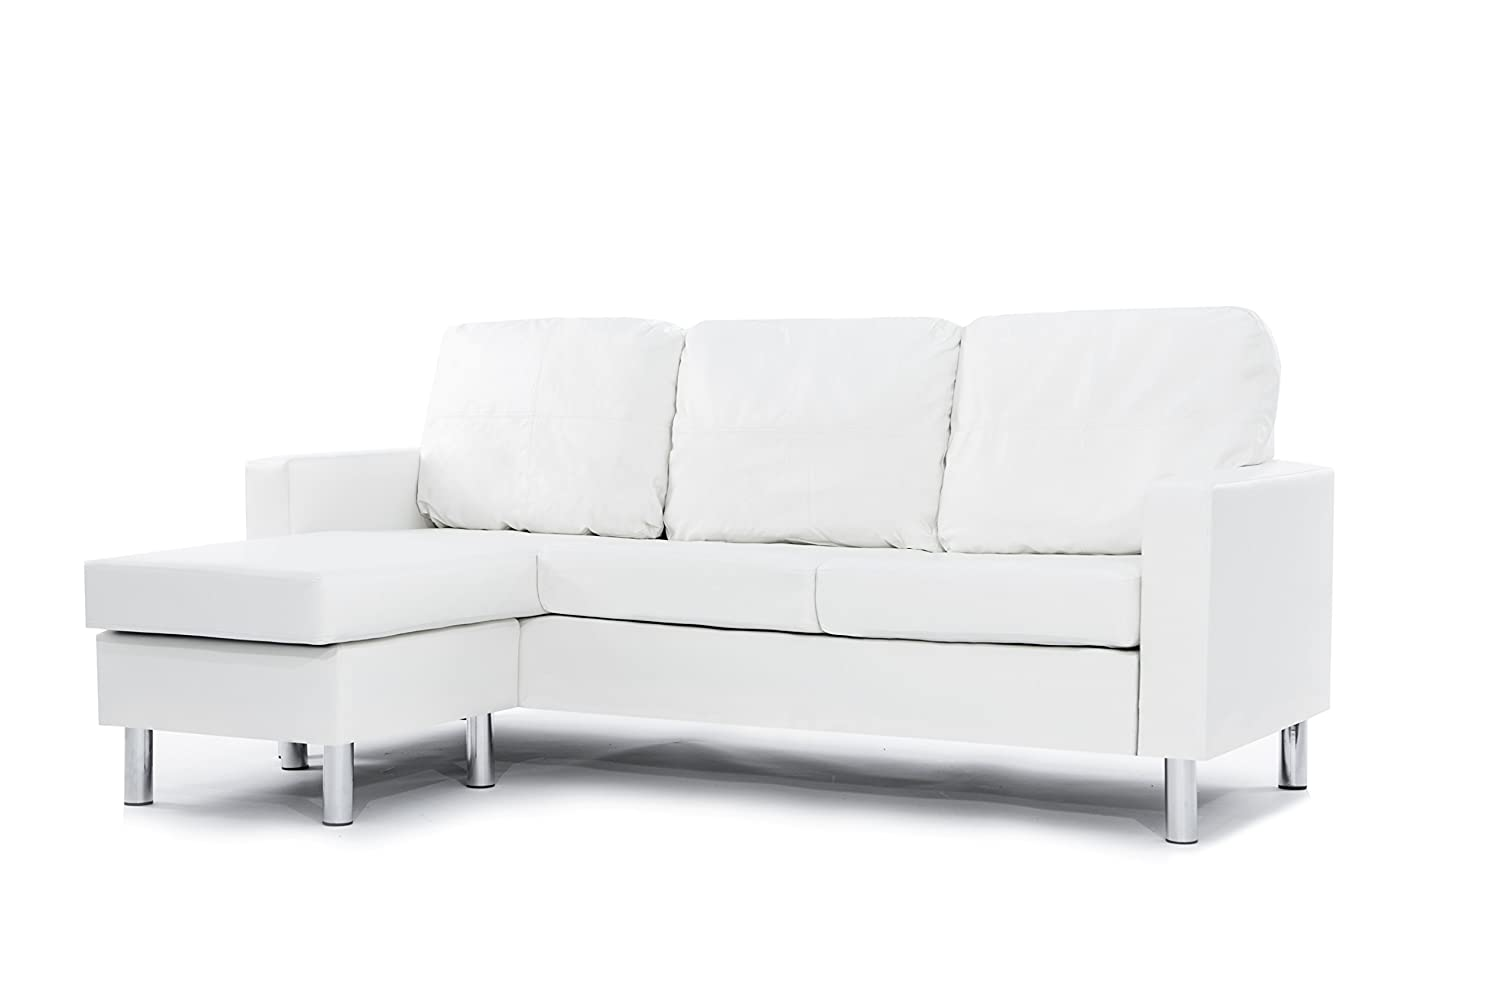 leather sectional sofa white reversible chaise lounge room modern couch new free ebay. Black Bedroom Furniture Sets. Home Design Ideas